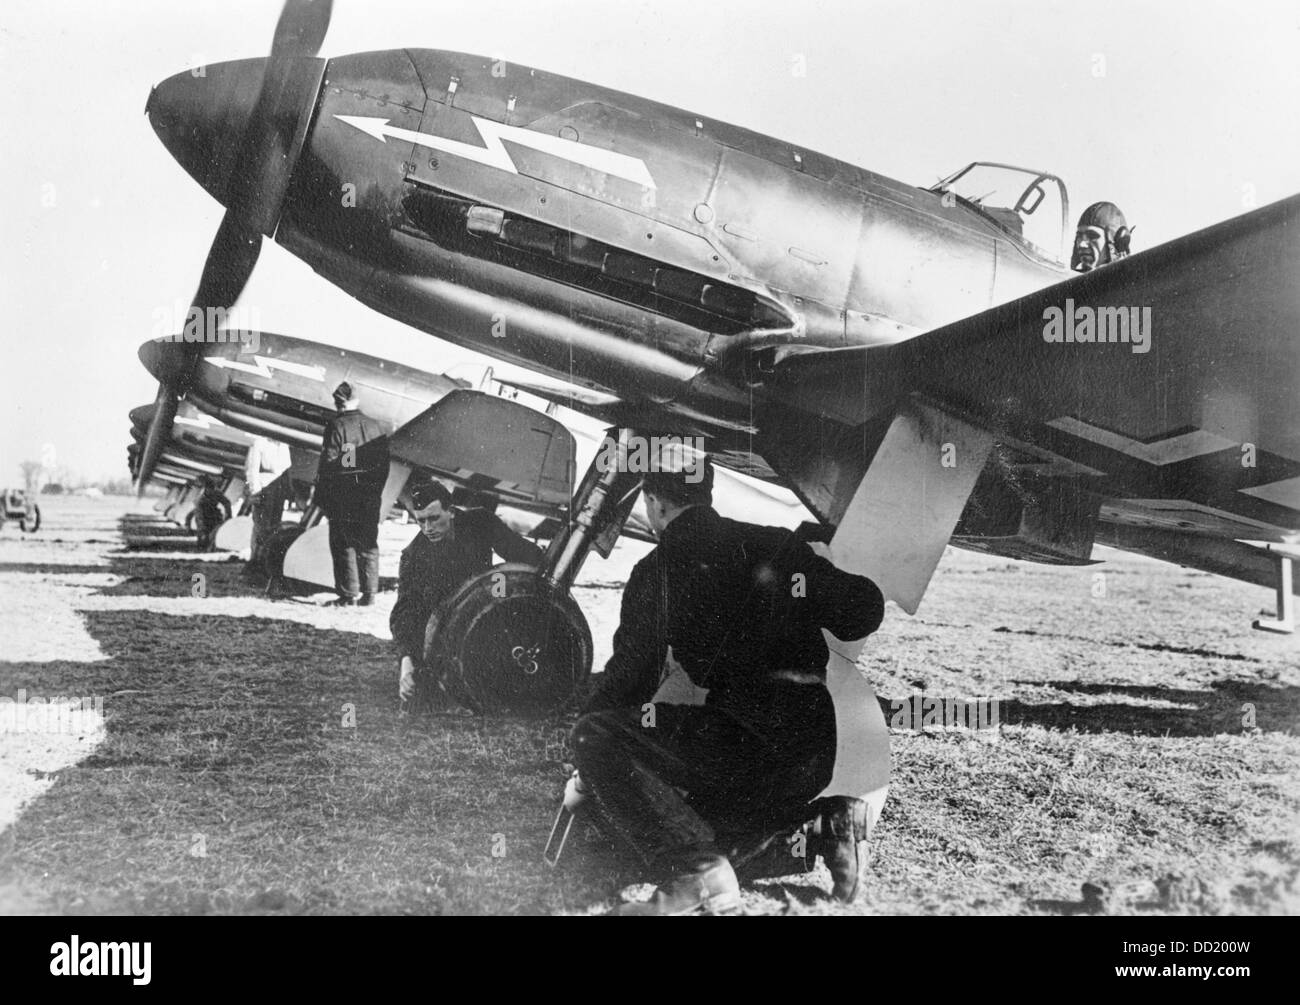 Members of the German Wehrmacht prepare fighters of the type Heinkel He 113 for the next air raid in April 1940. - Stock Image